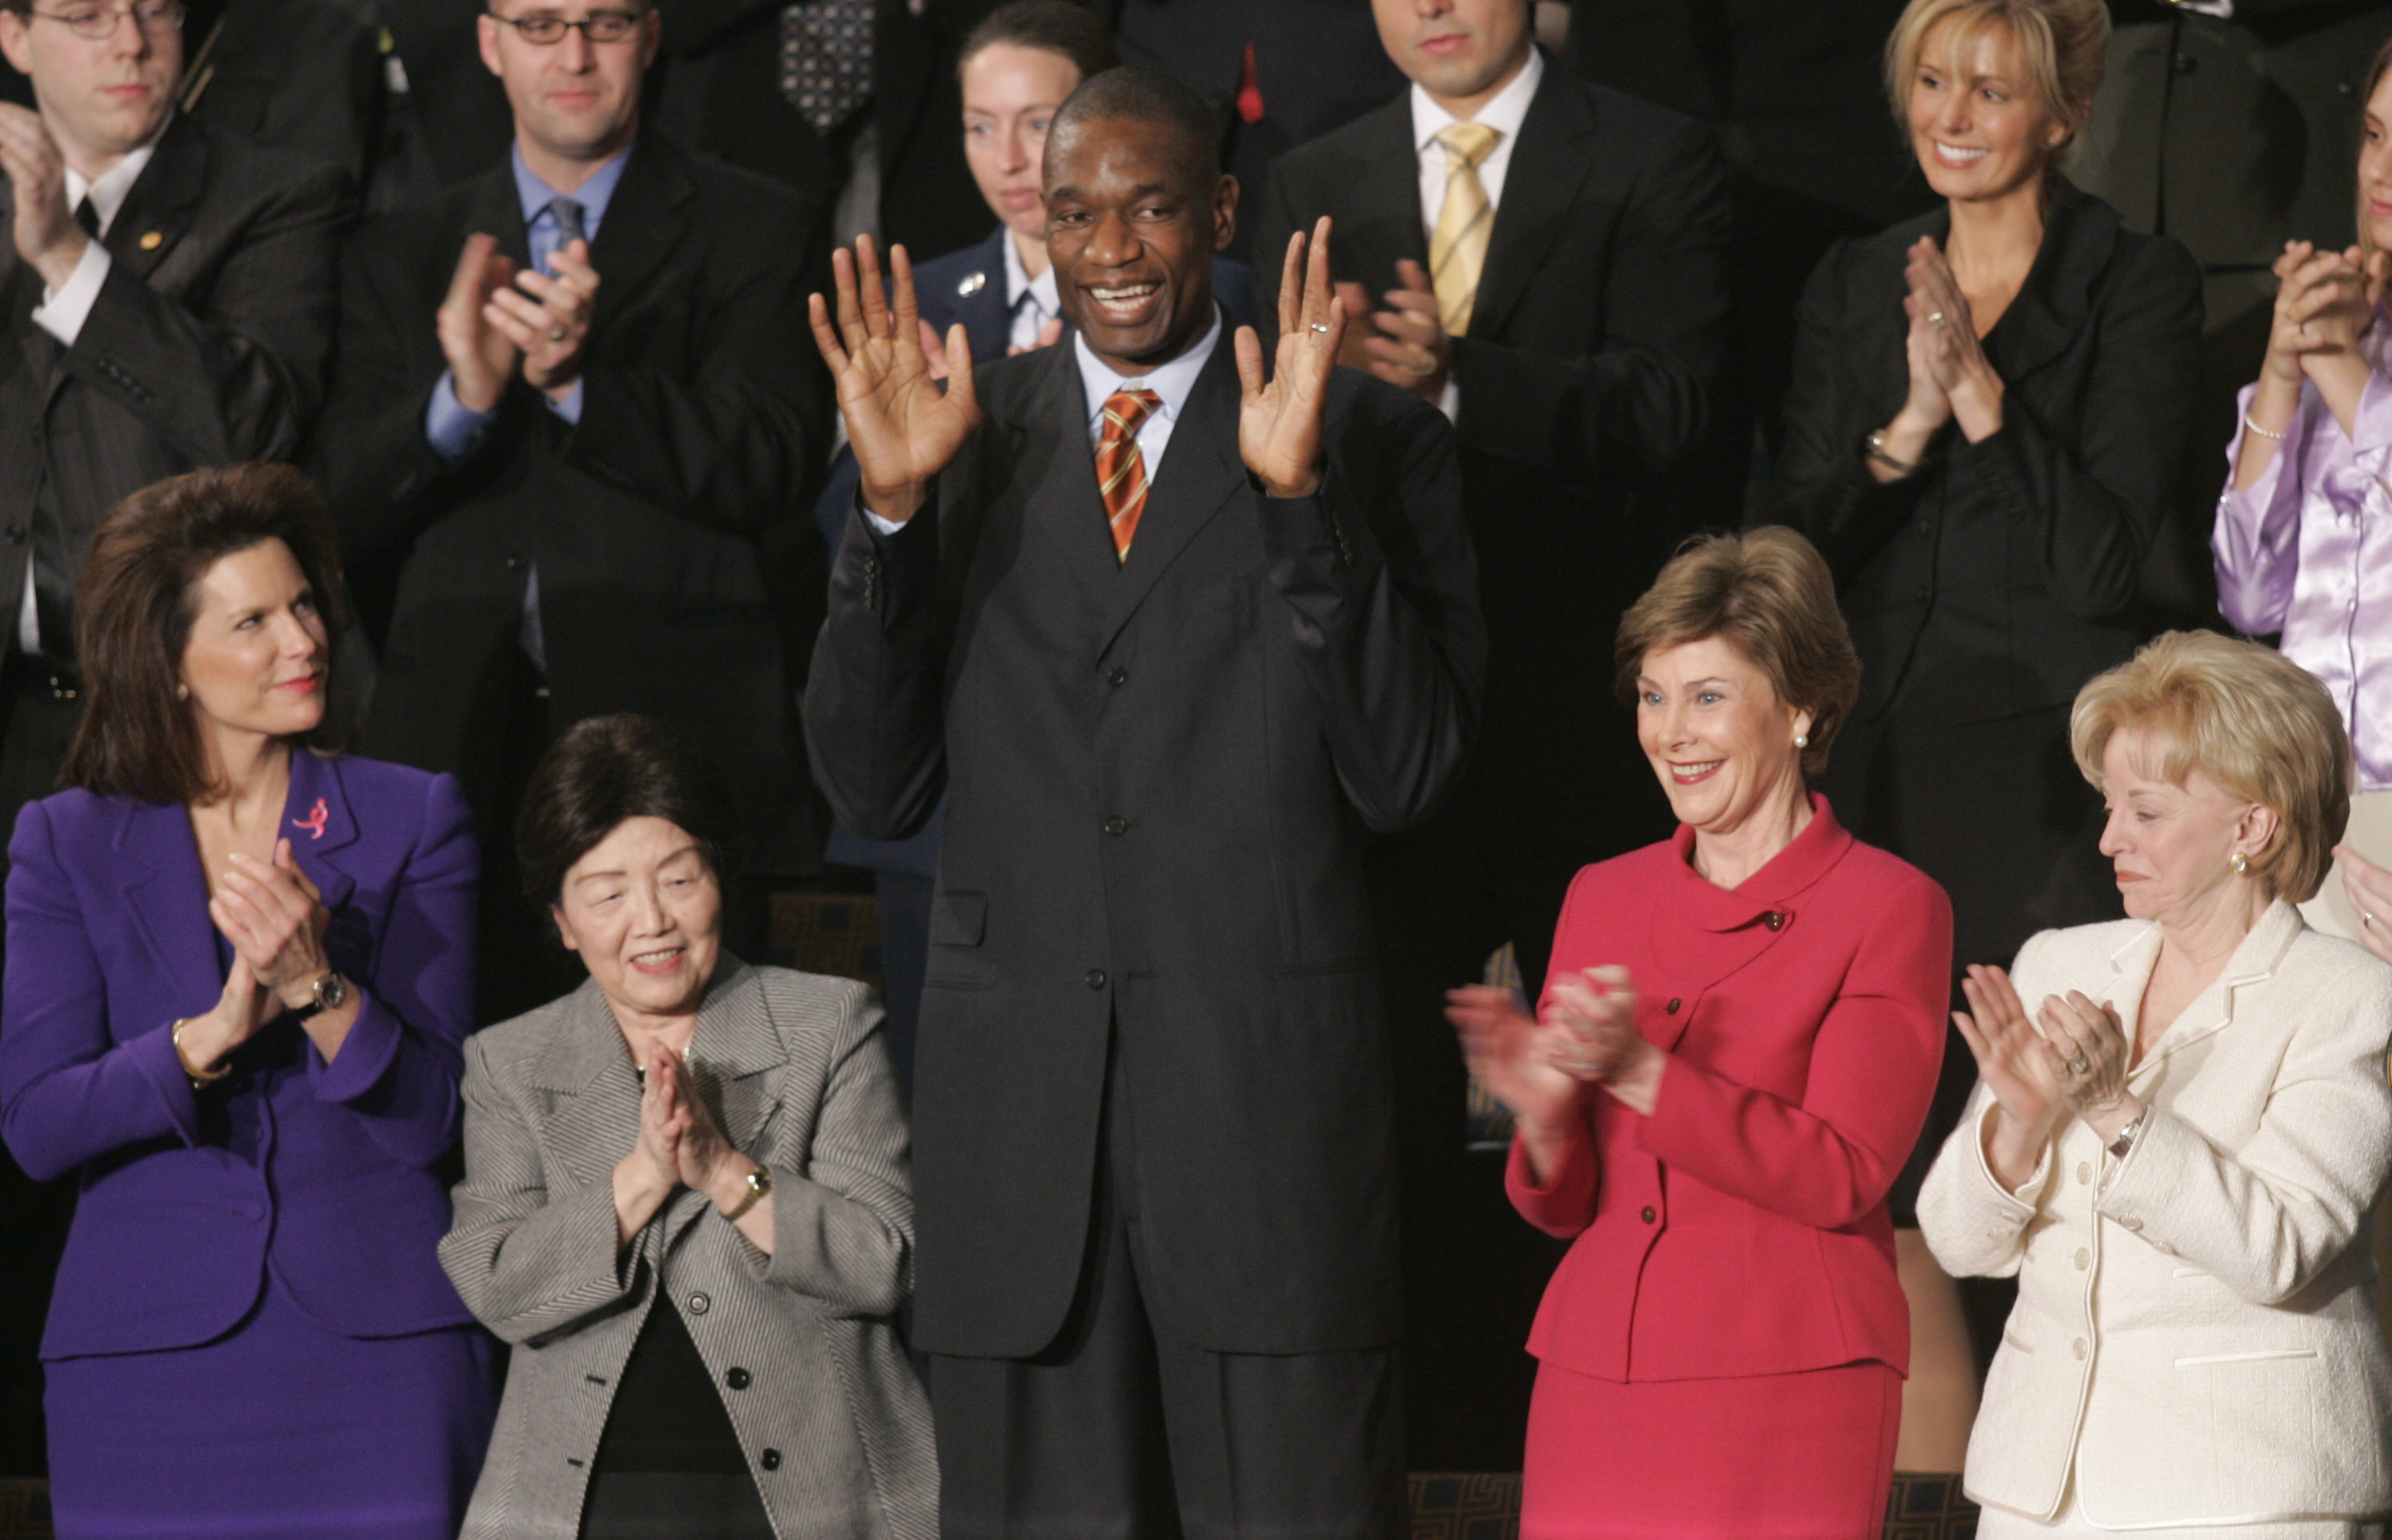 Houston Rockets center and Congolese native Dikembe Mutombo acknowledges the crowd during President Bush's State of the Union address on Capitol Hill in Washington, Jan. 23, 2007. Mutombo raised $29 million to build the African country's newest hospital in 40 years.